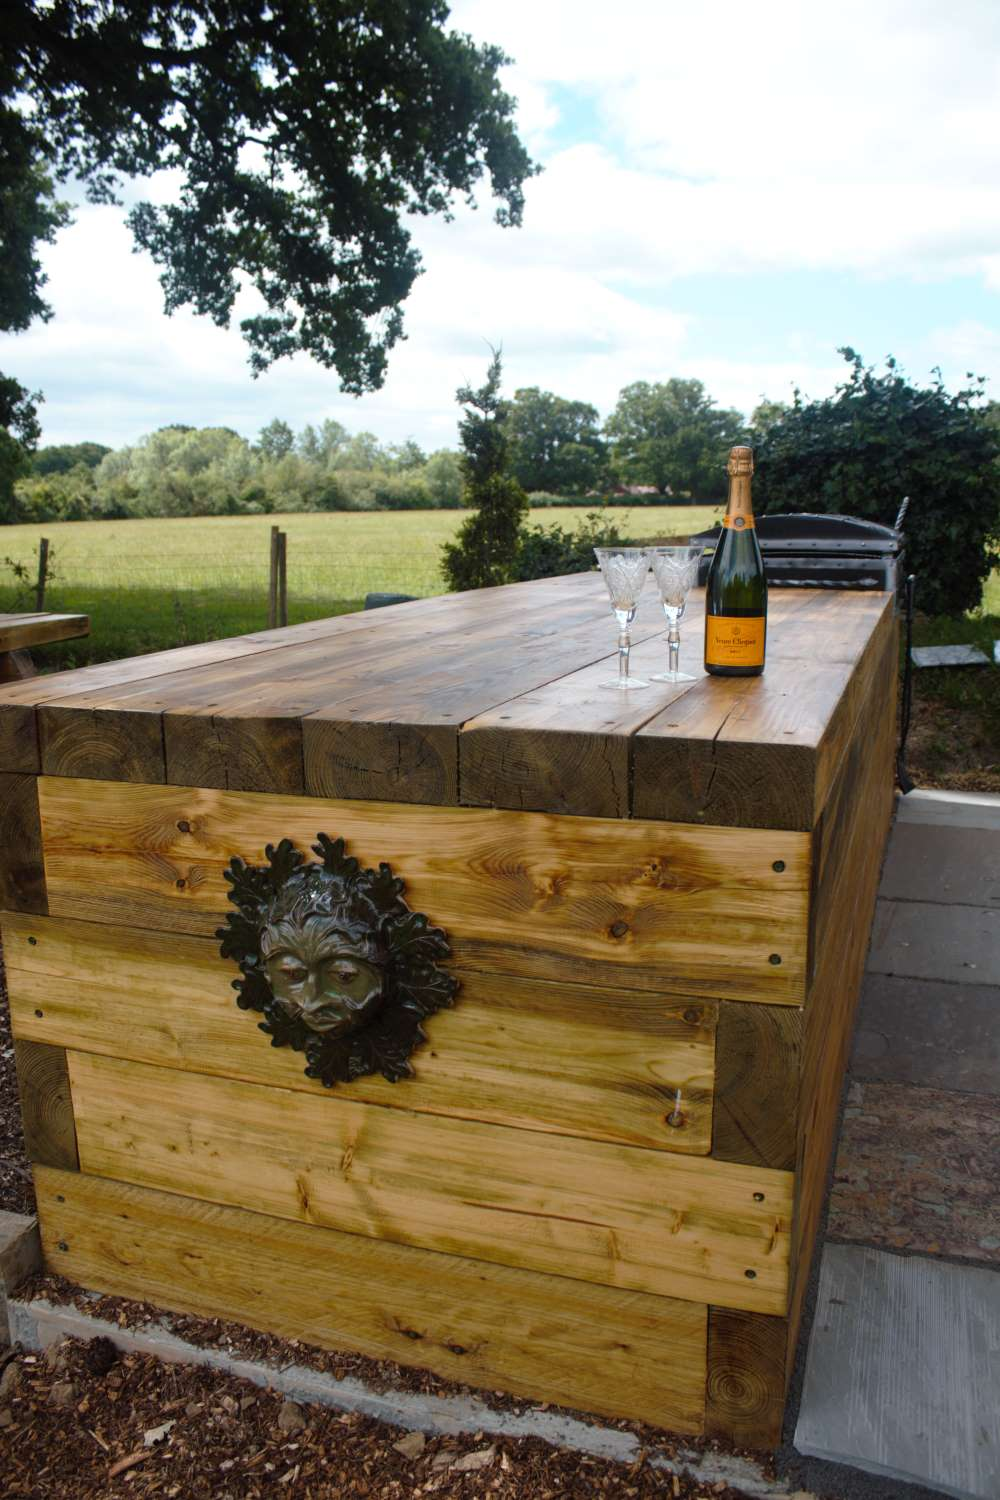 Bespoke Outdoors Living For Sustainable Quality Living - BSOL on Bespoke Outdoor Living id=56690